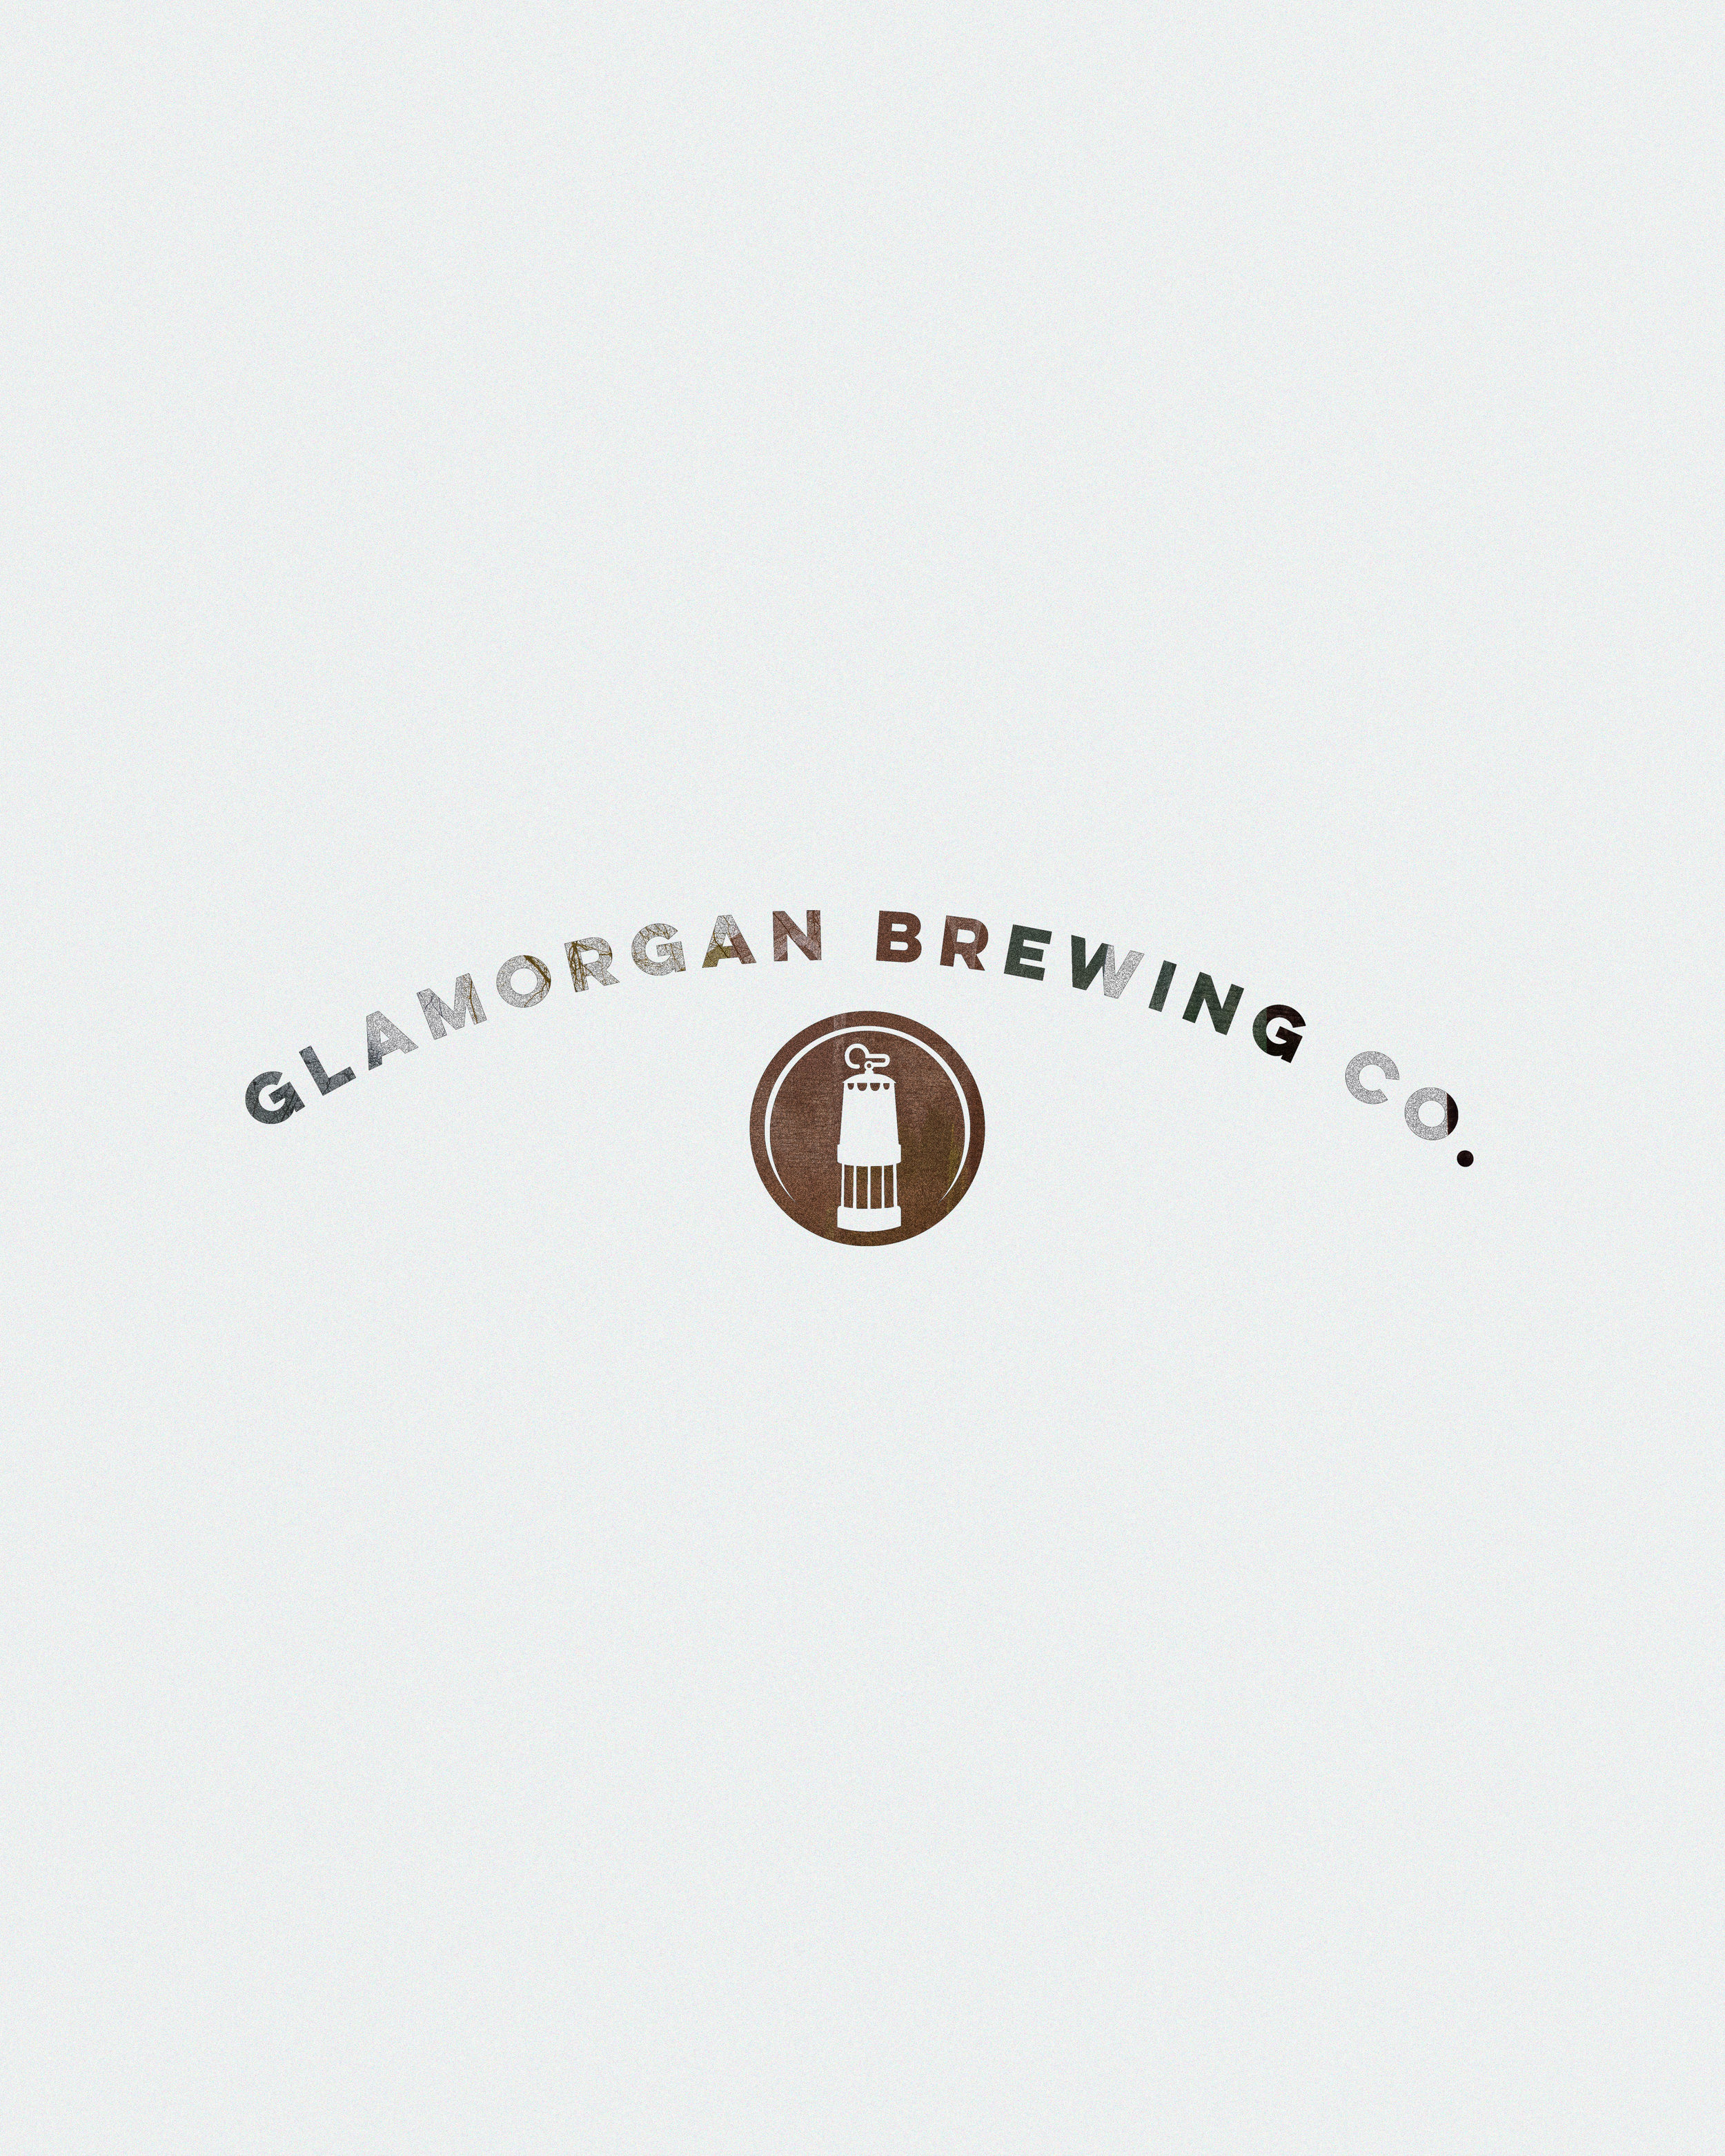 Glamorgan_Brewing_Logo.jpg